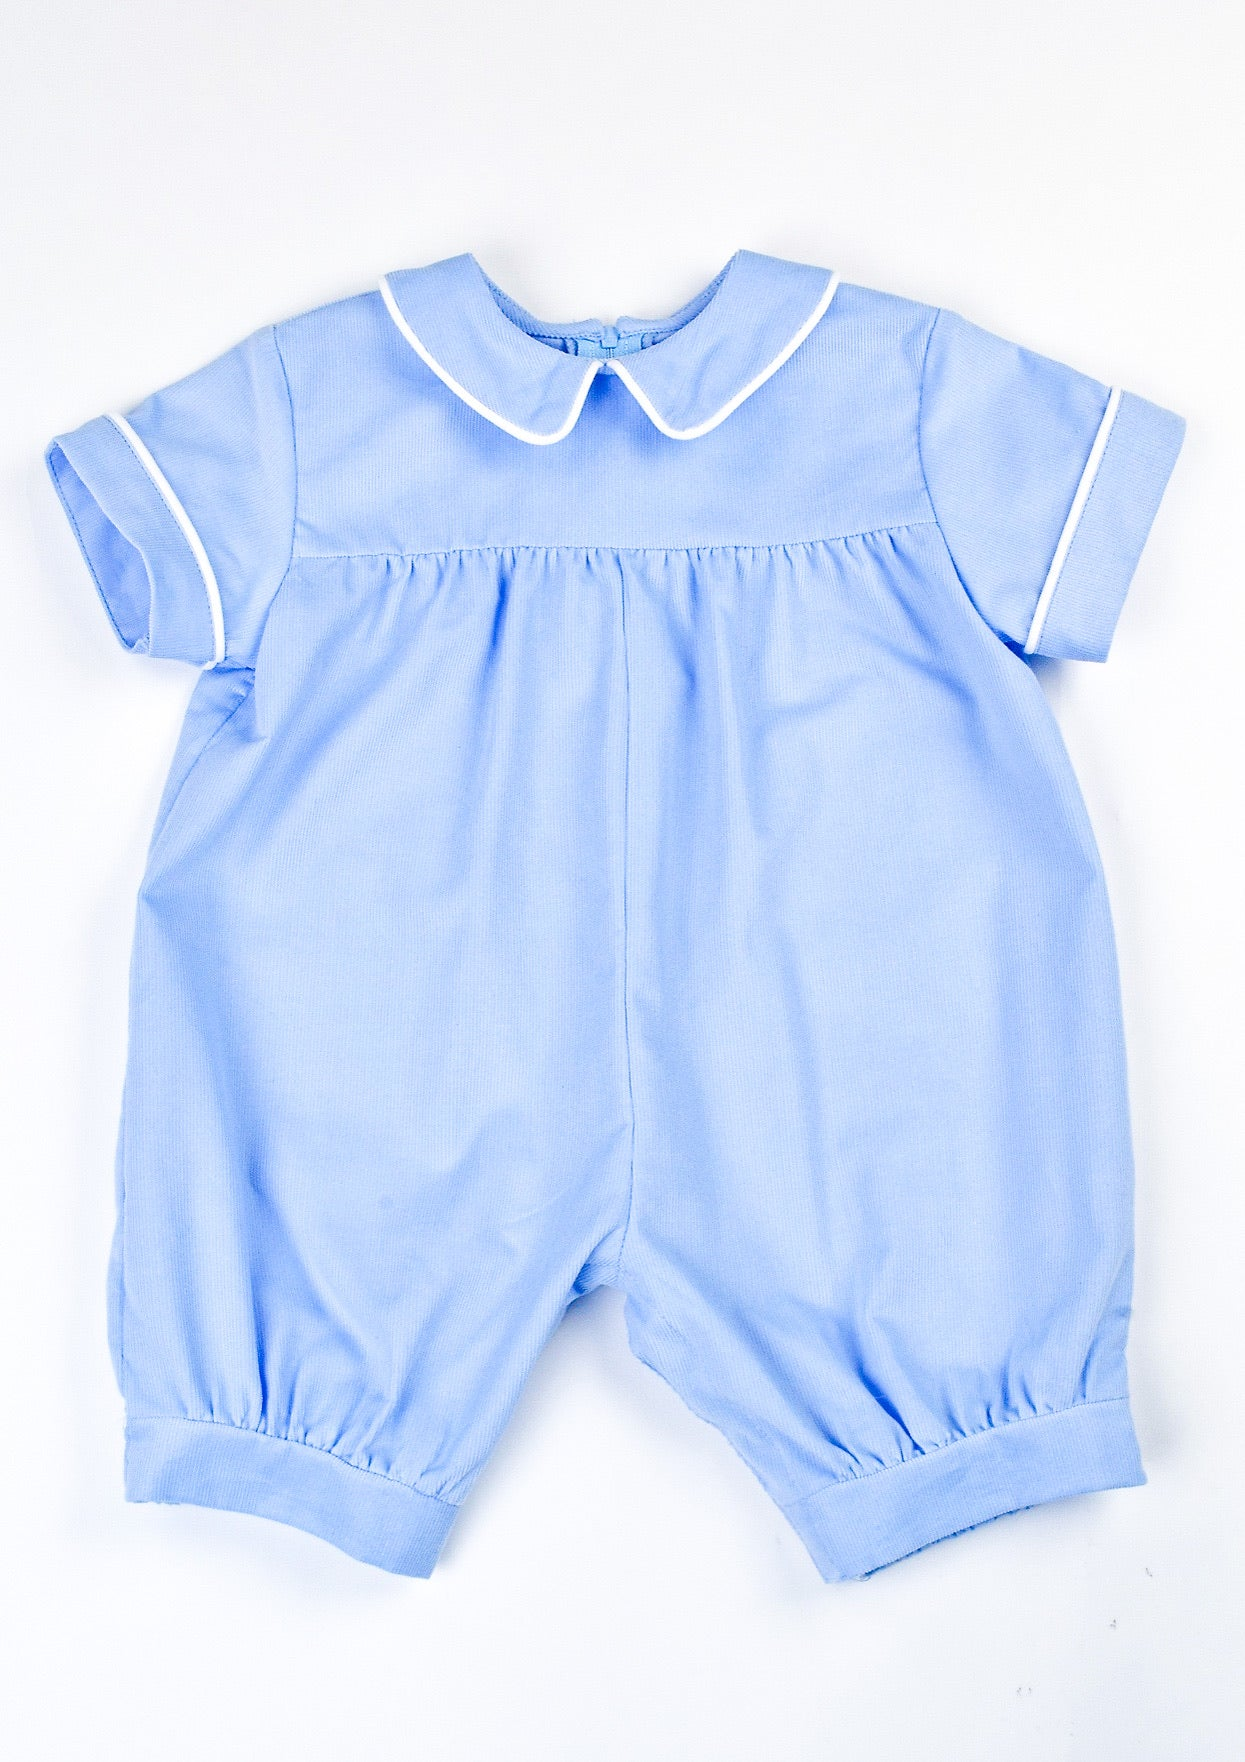 PIPED CORDUROY ROMPER - BLUE - Made by McNamara